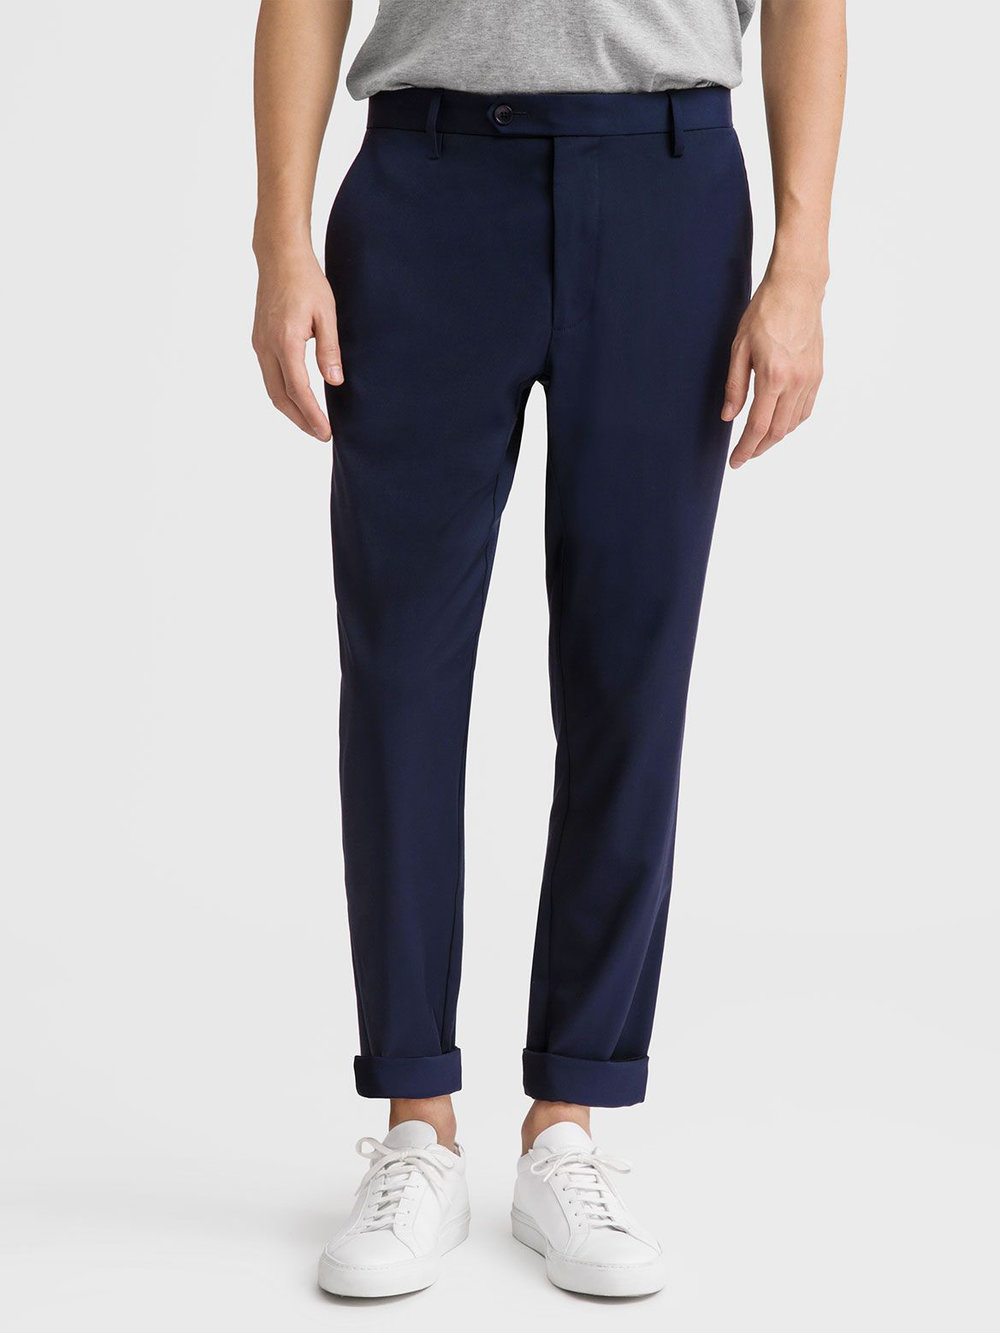 Smart Tailored Pants by Grana | Men's Capsule Wardrobe on The Good Trade